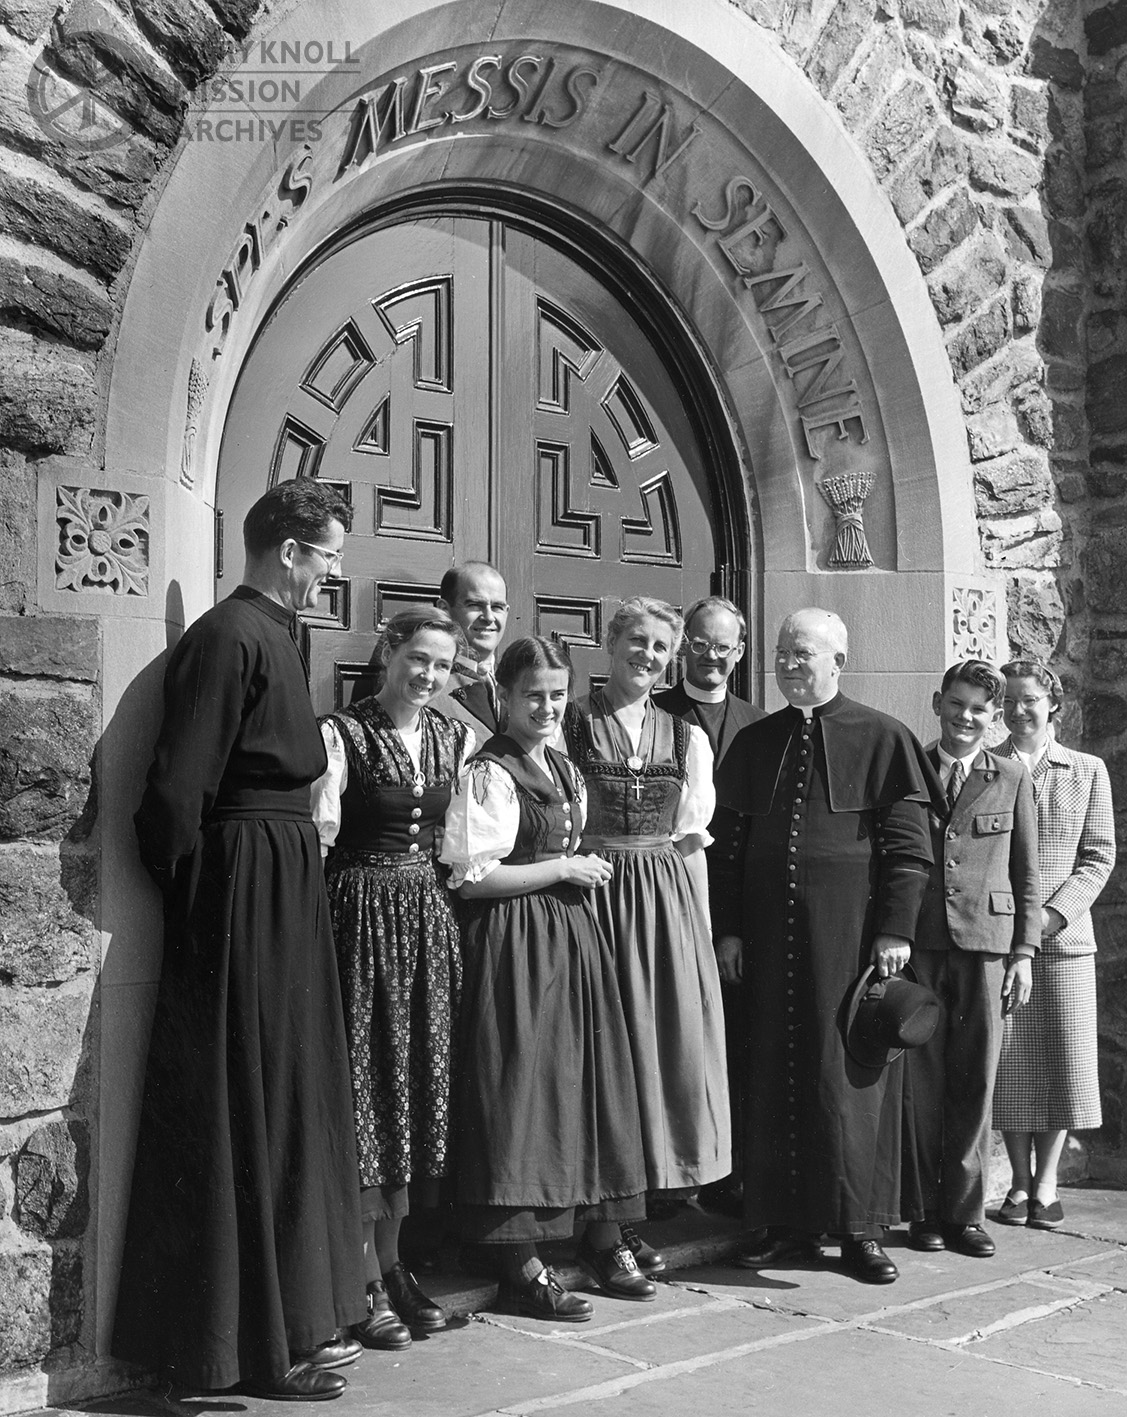 Members of the Von Trapp Family Singers with Maryknoll's Superior General, Bishop Raymond Lane, October 1951